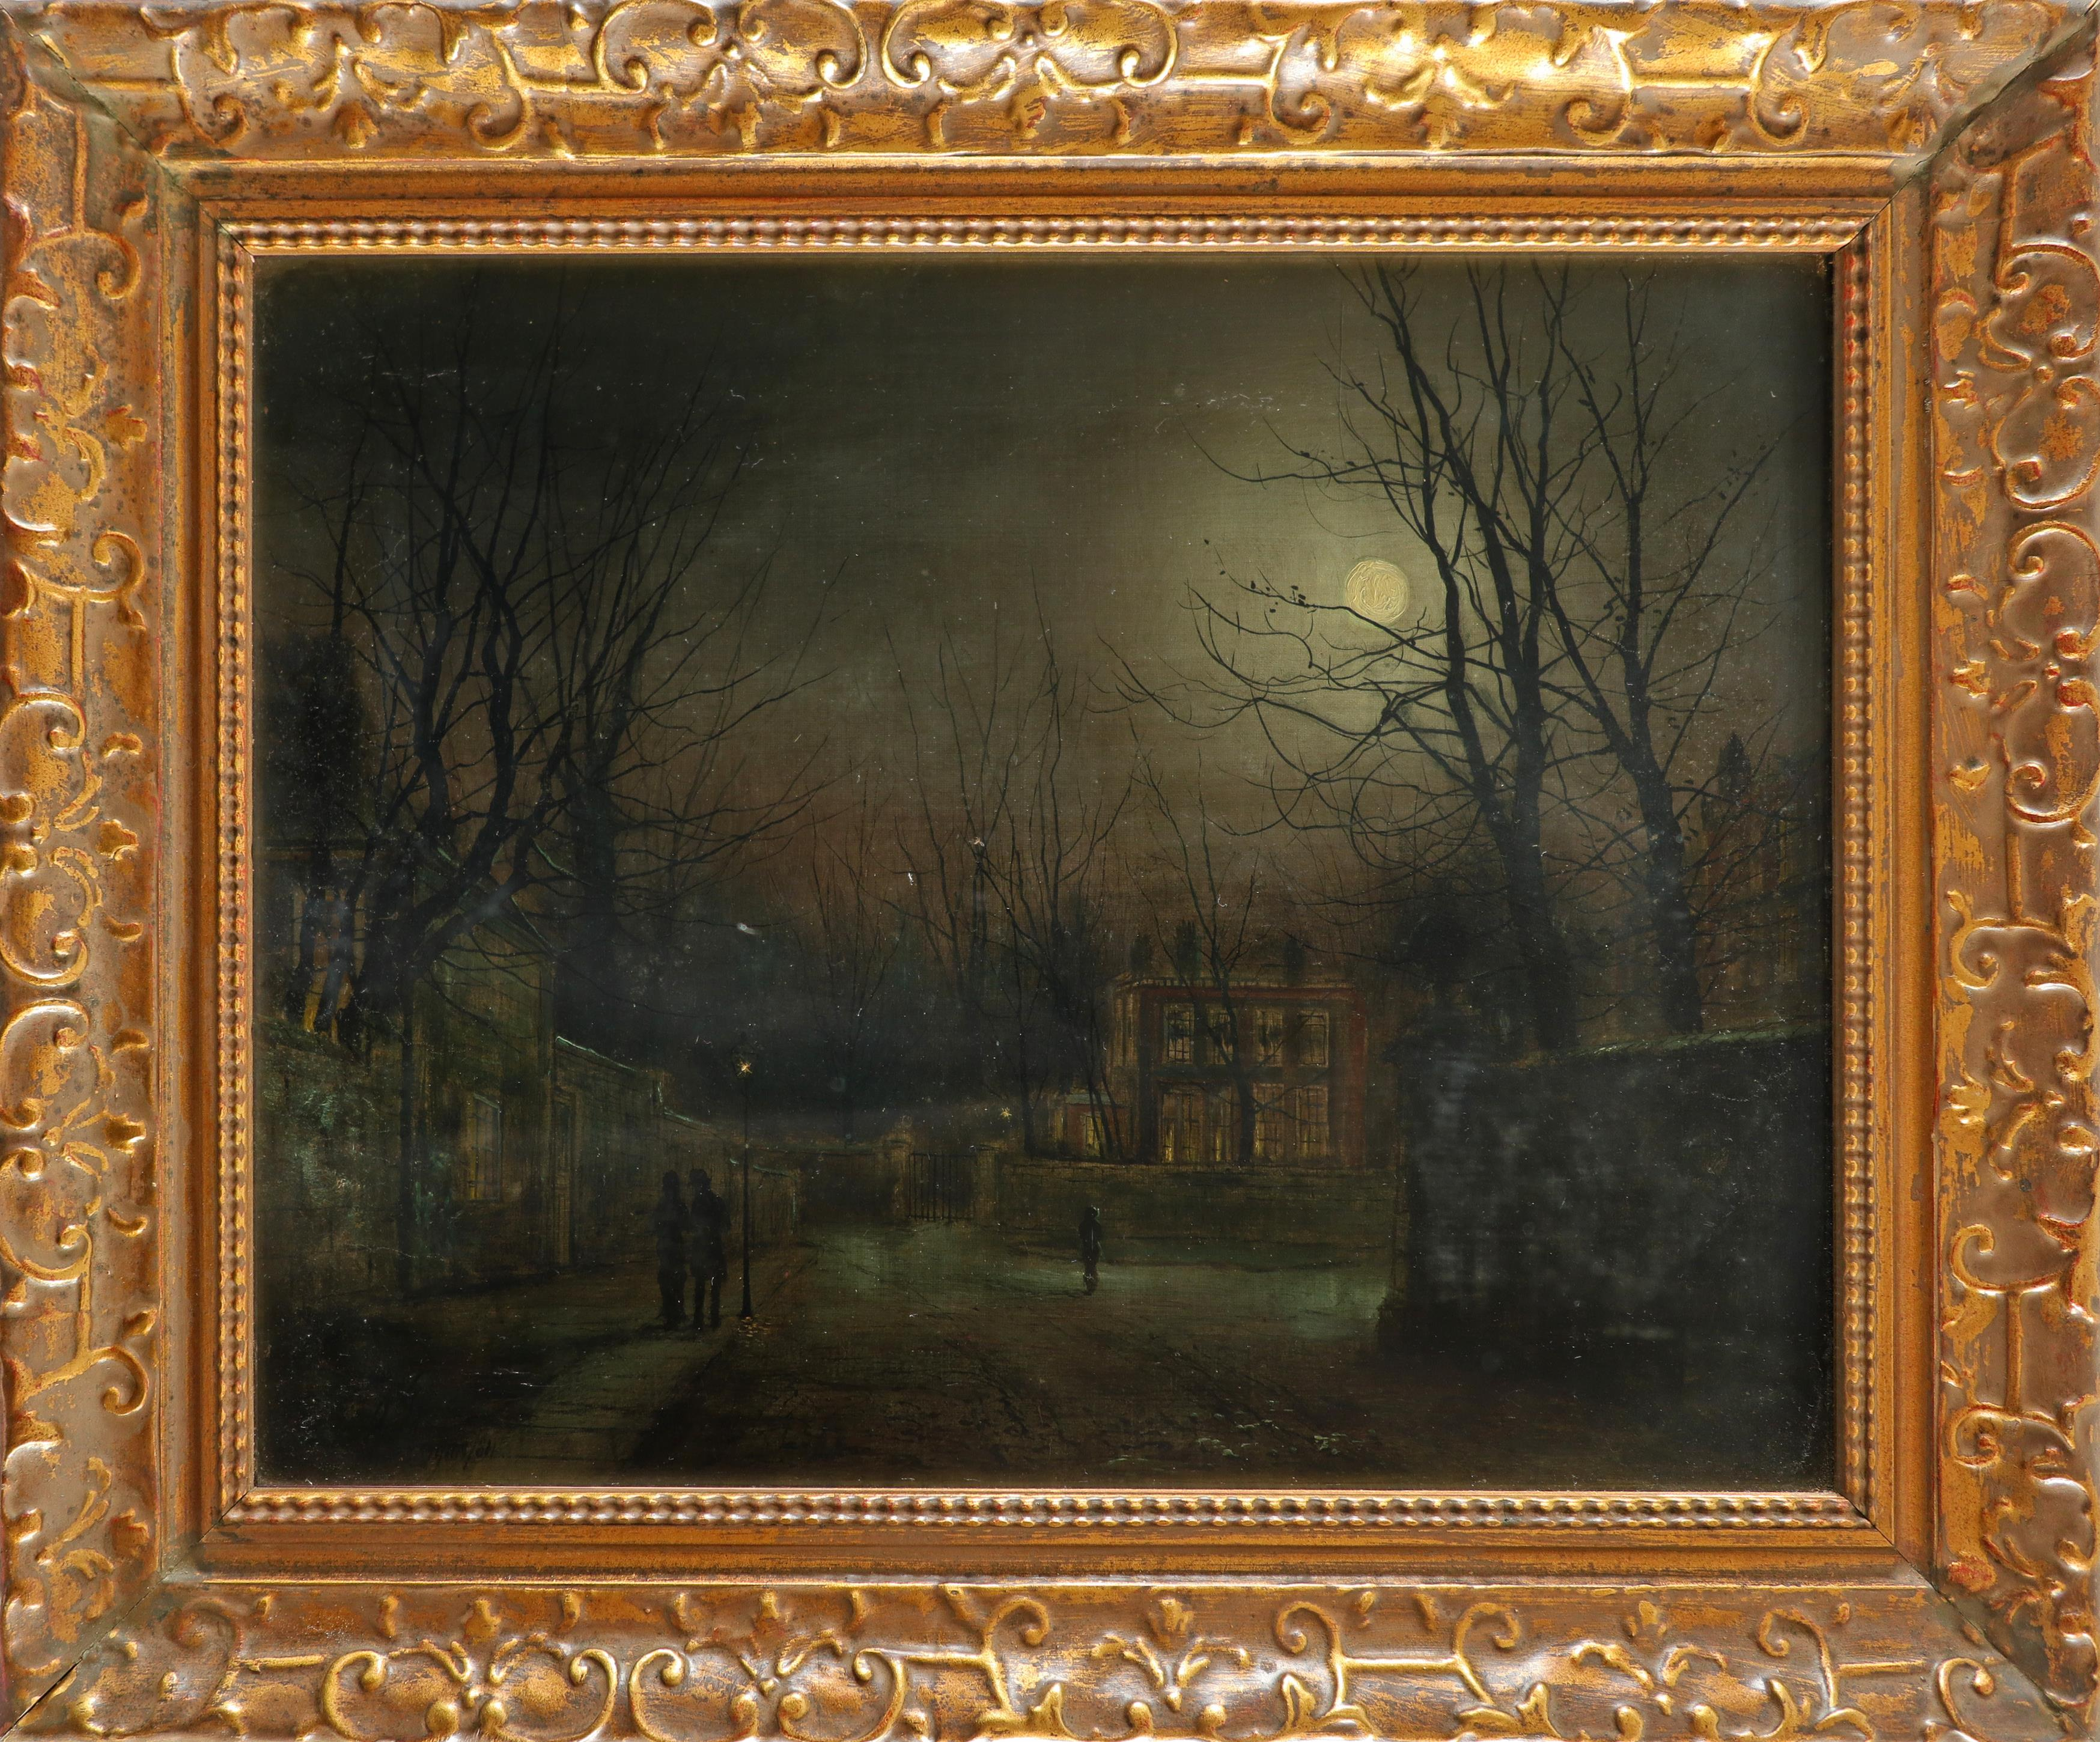 W. Morgan (Late 19th Century) Figures in a moonlit street Signed and dated W Morgan 1881 (lower - Image 2 of 3